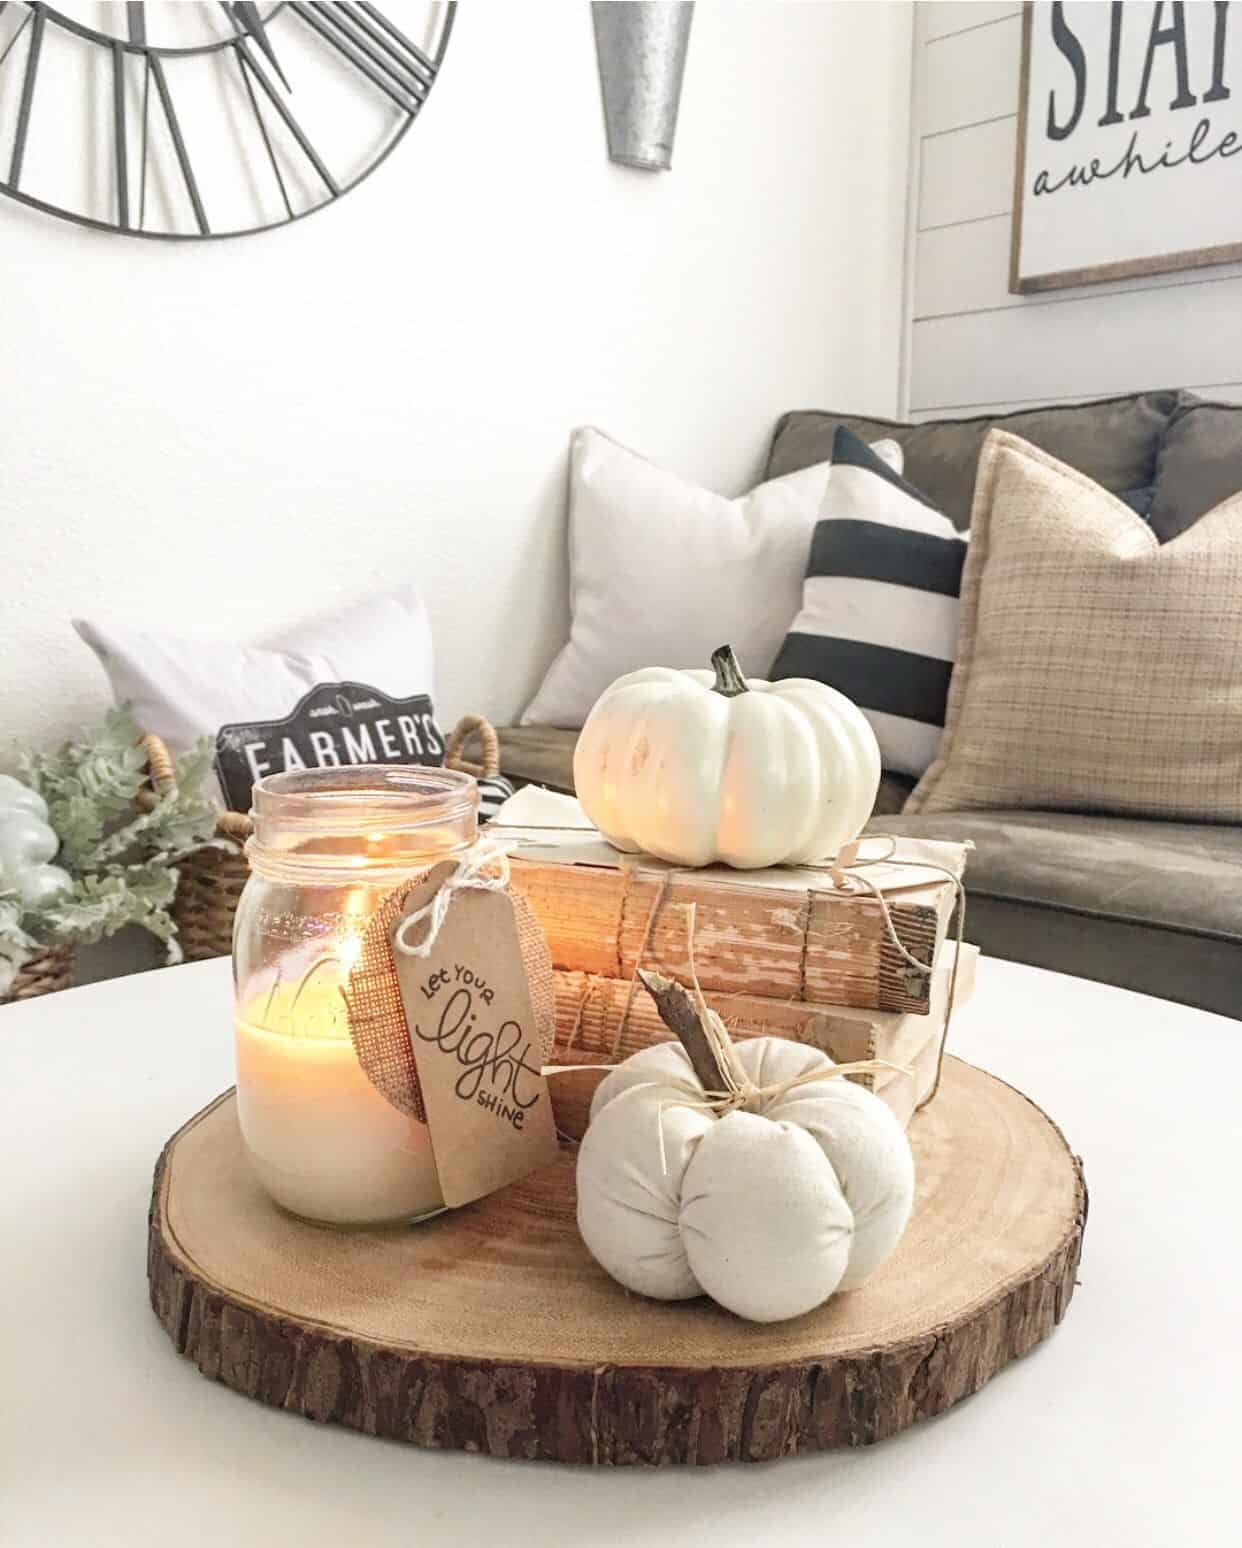 decorating ideas for fall 2015 Best of Simple fall decor IG nellyfriedel Apartment